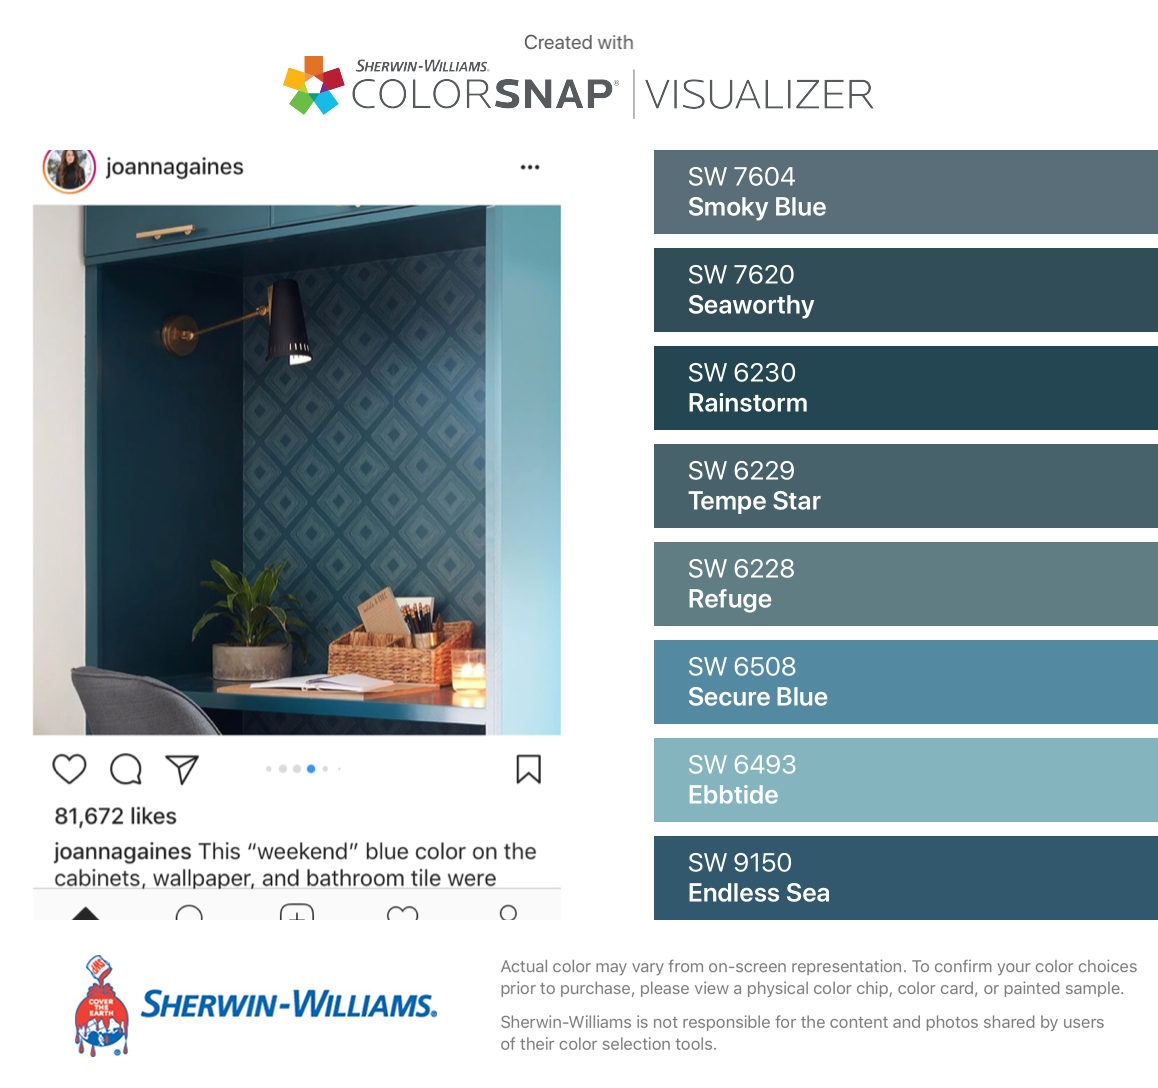 I Found These Colors With Colorsnap Visualizer For Iphone By Sherwin Williams Smoky Blue Sw 7604 Seaworthy Sw 7620 Rain House Colors Color Paint Colors